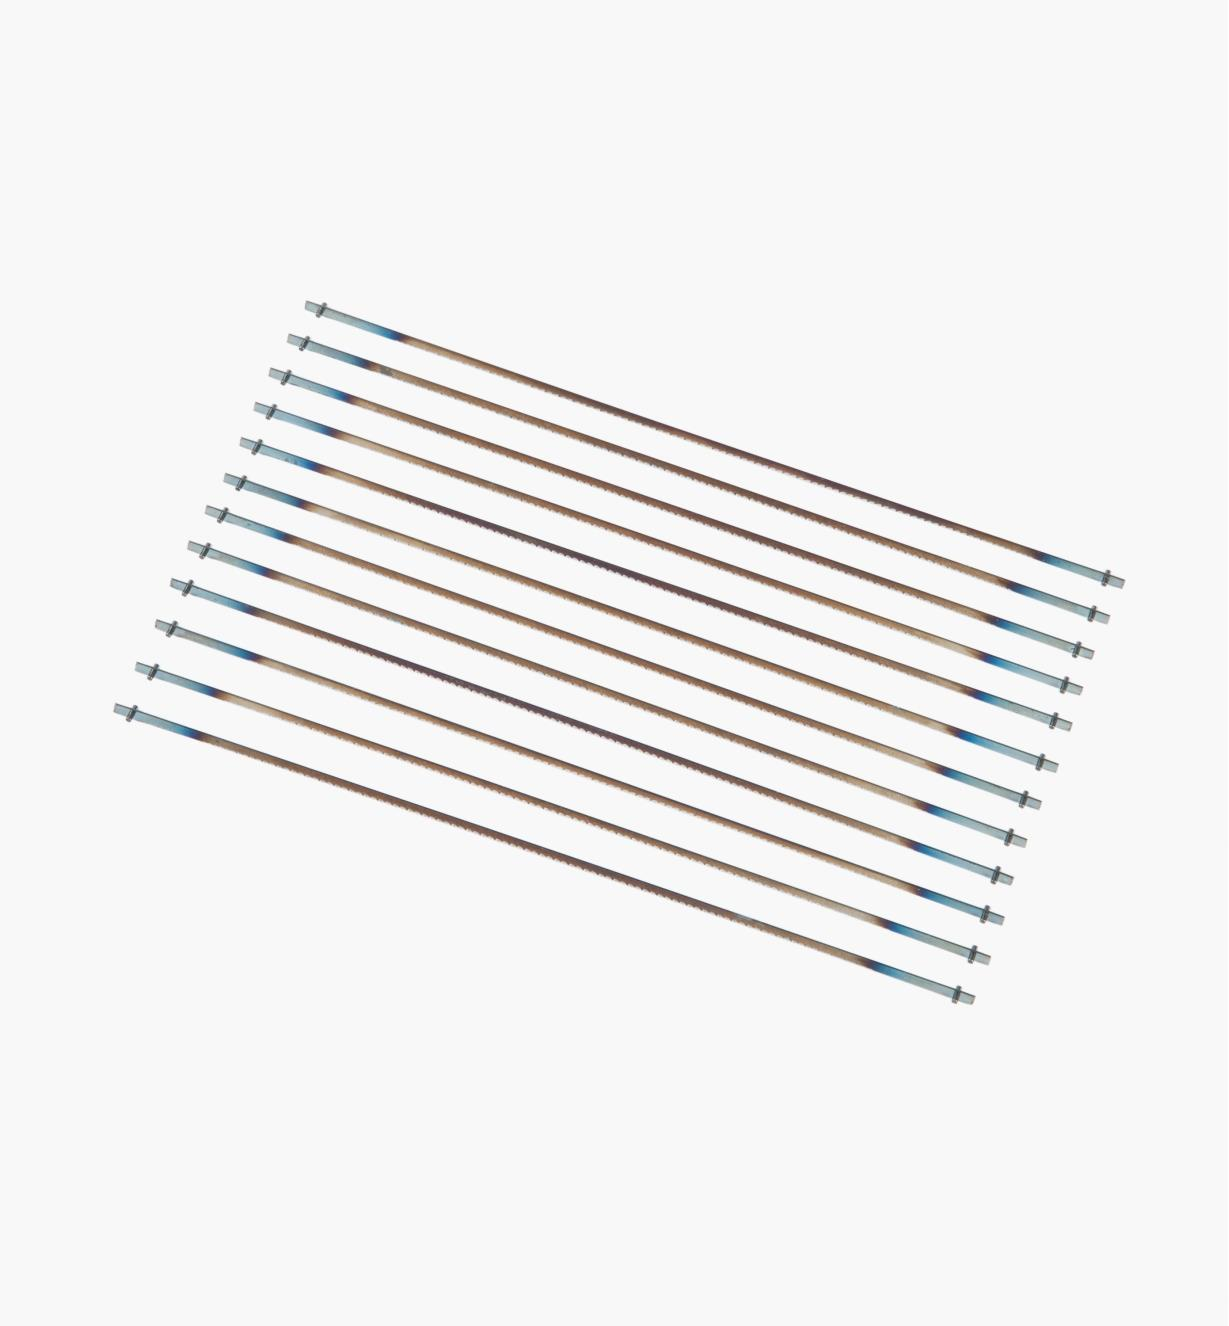 02T1083 - 18tpi Skip-Tooth Pégas Coping Saw Blades, pkg. of 12